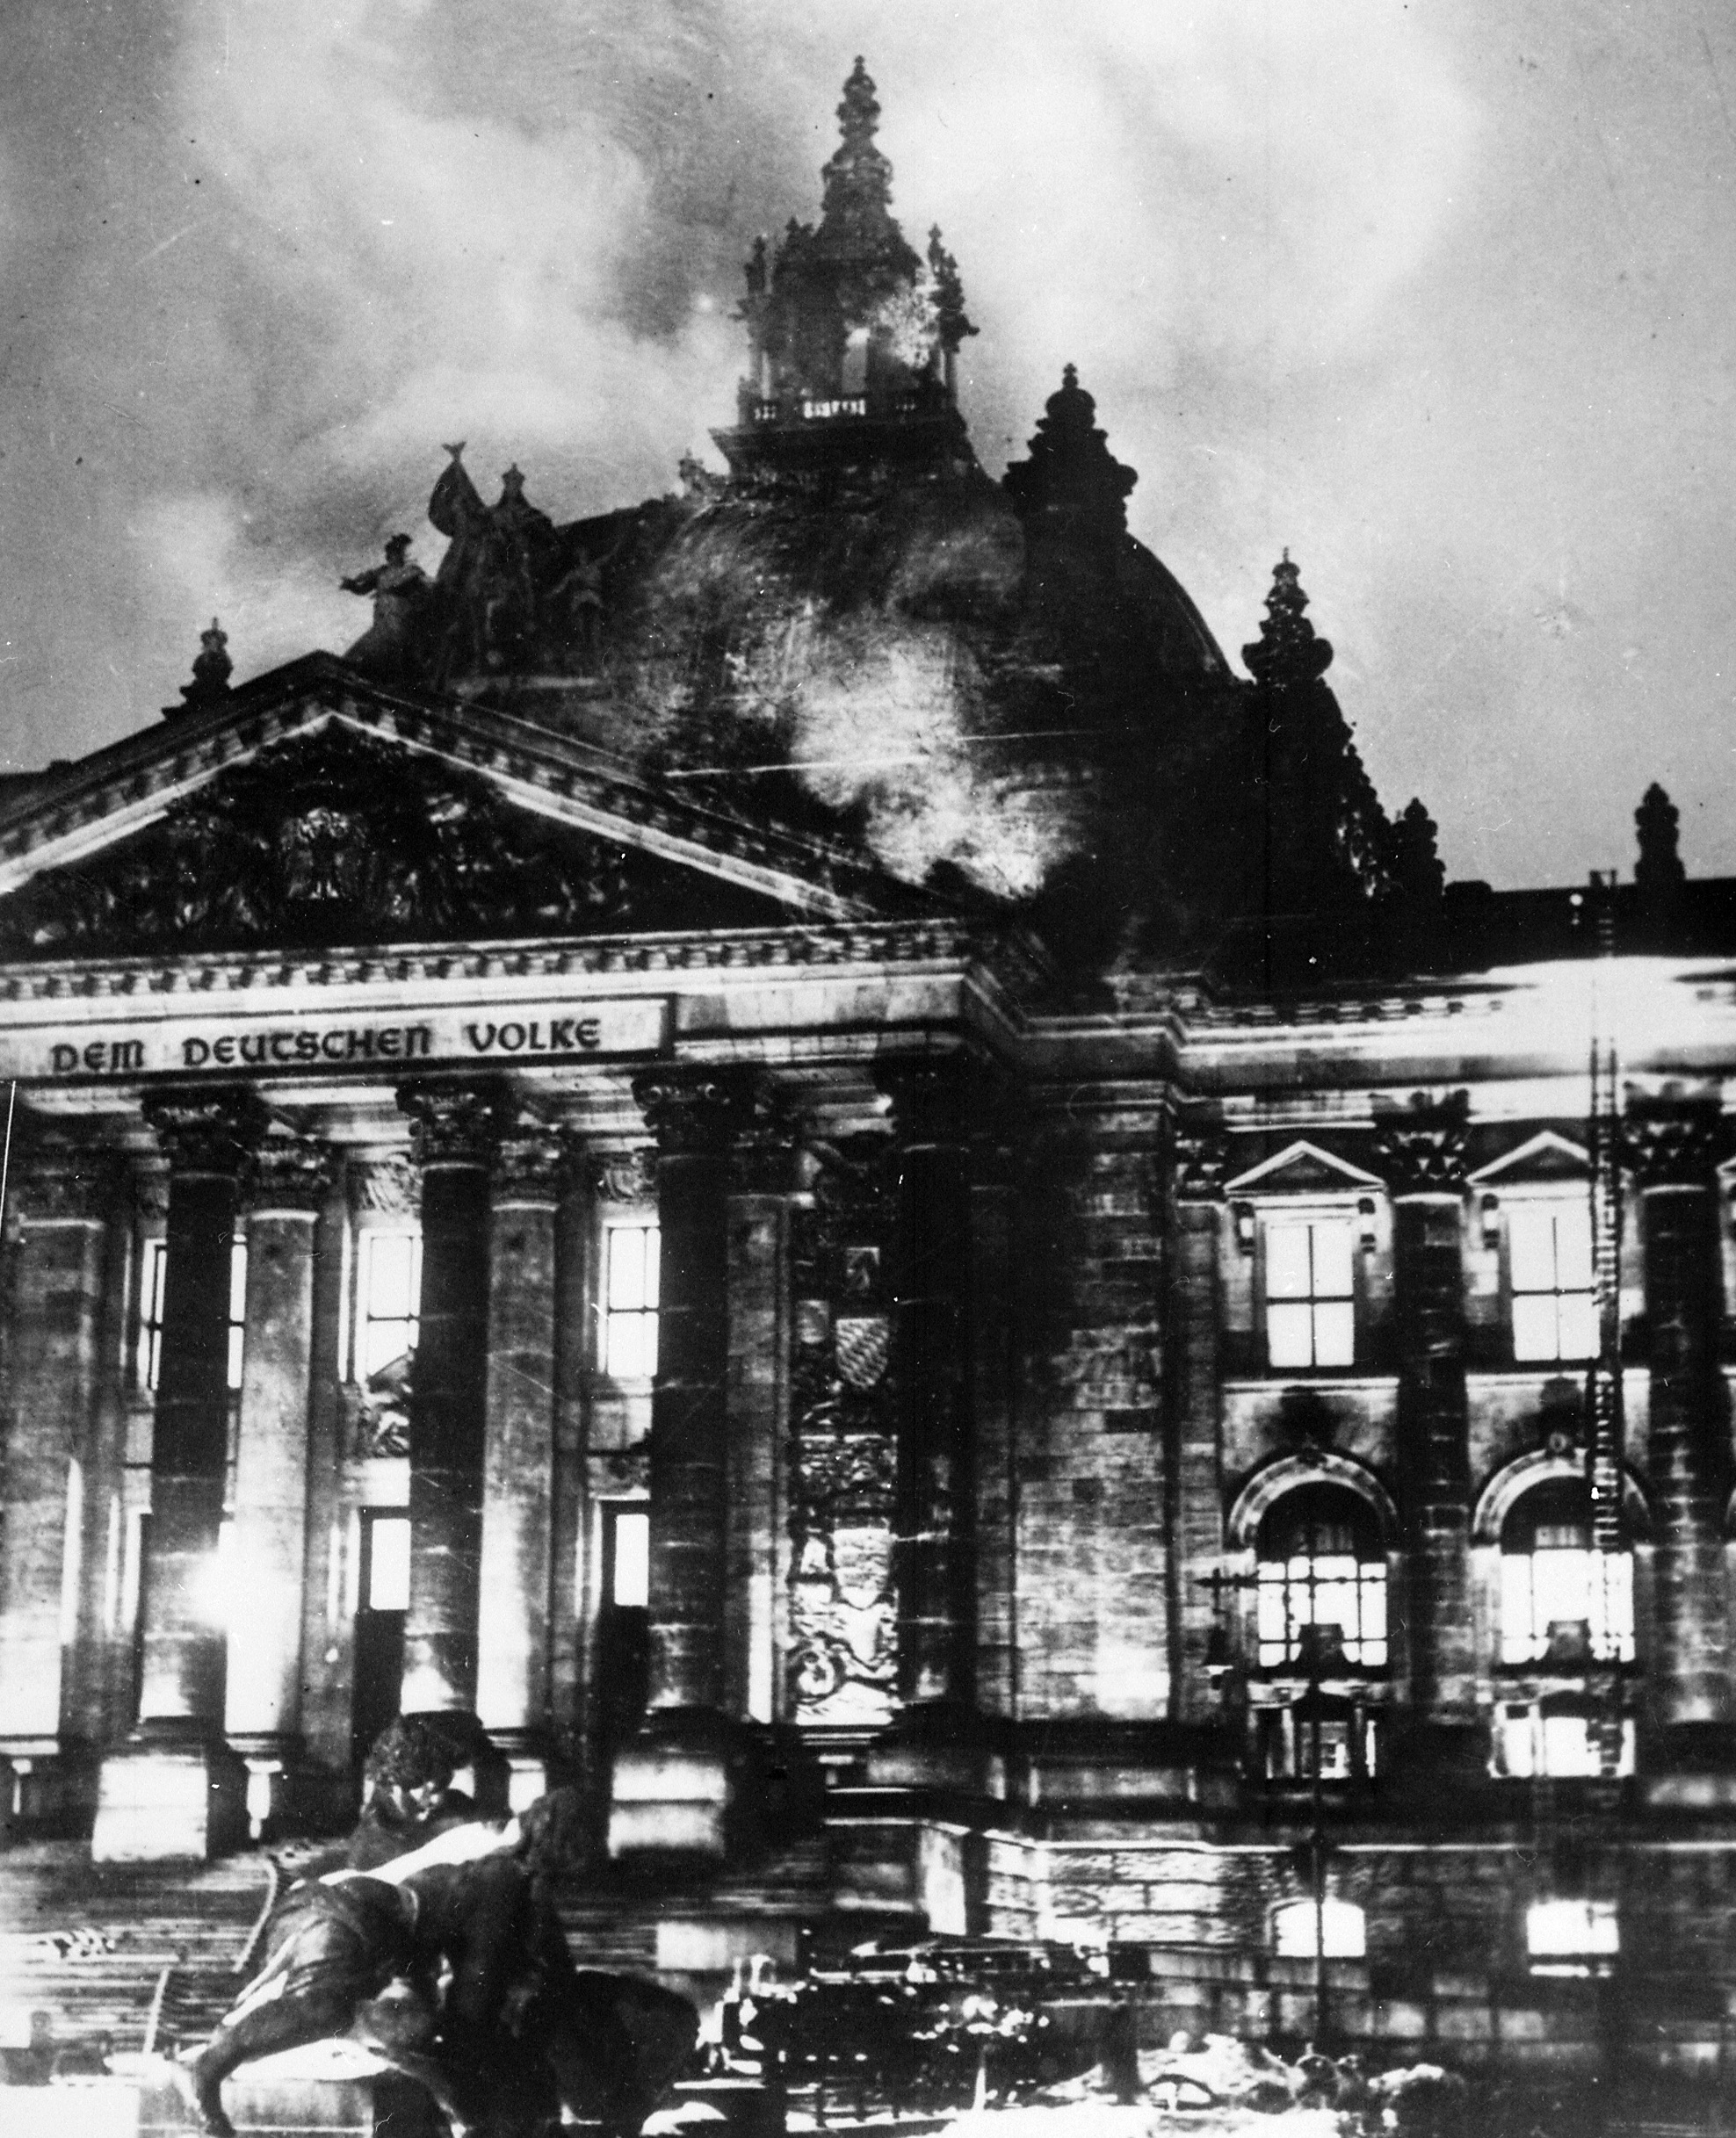 https://i2.wp.com/upload.wikimedia.org/wikipedia/commons/2/20/Reichstagsbrand.jpg